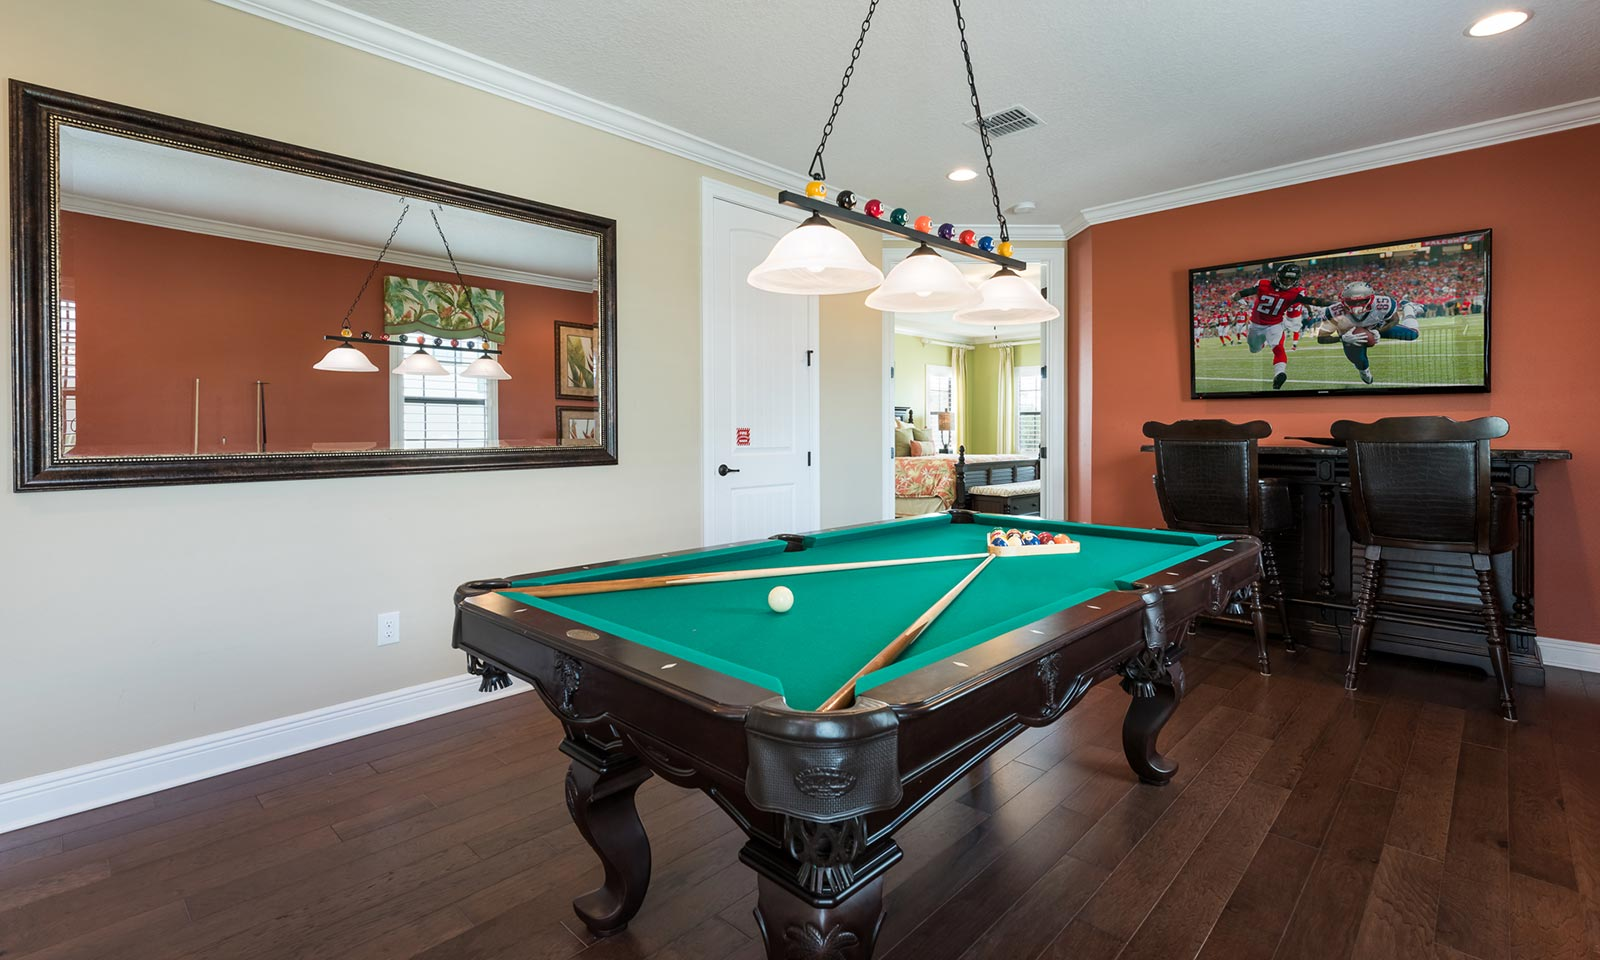 [amenities:Pool-Table:1] Pool Table